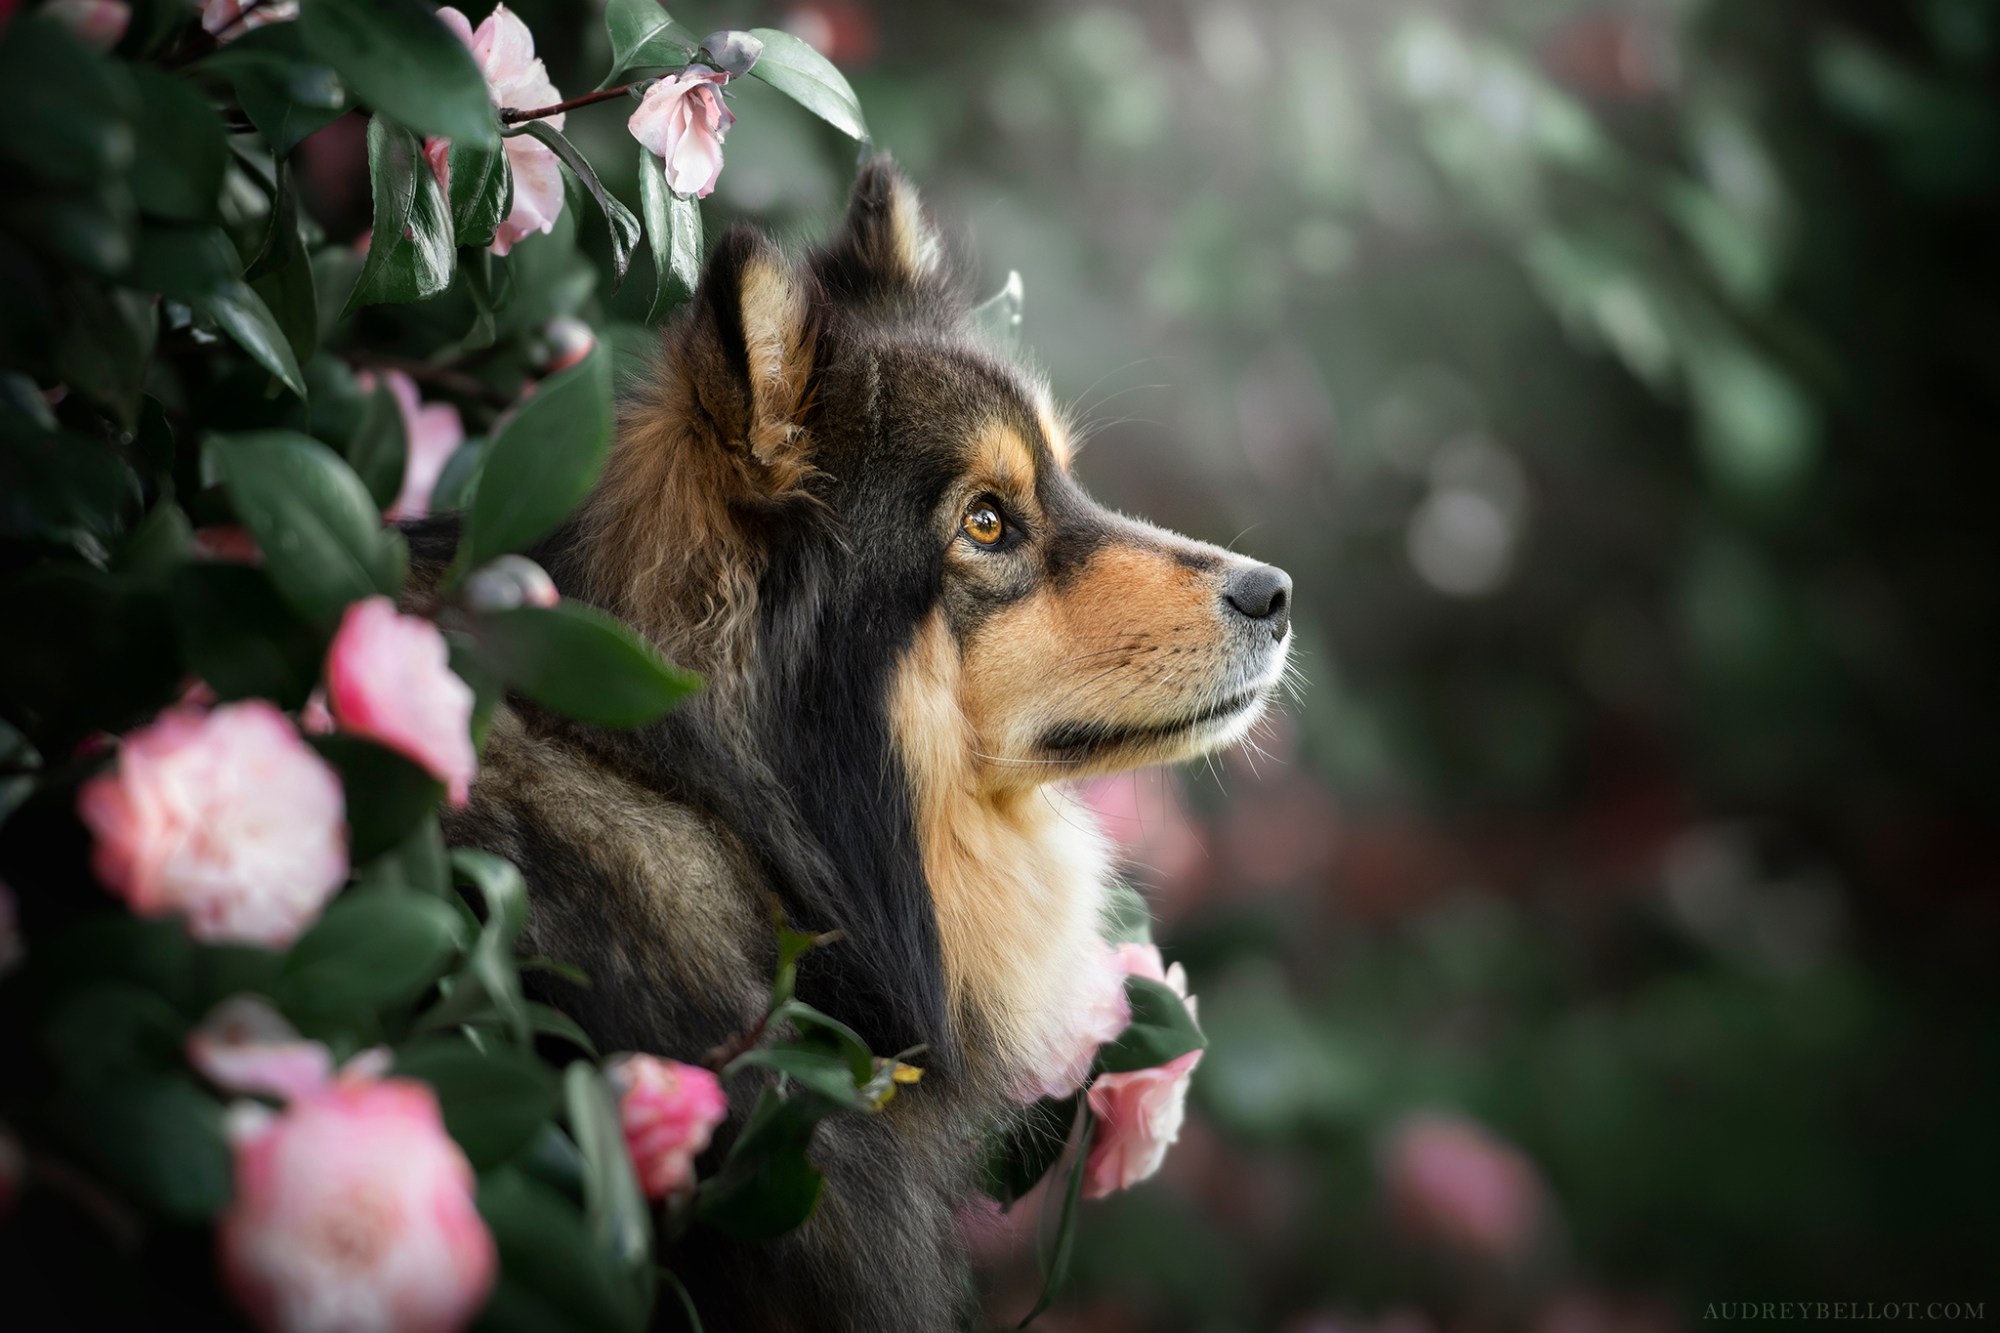 Stages Photo Chien Workshop photographie canine Audrey Bellot